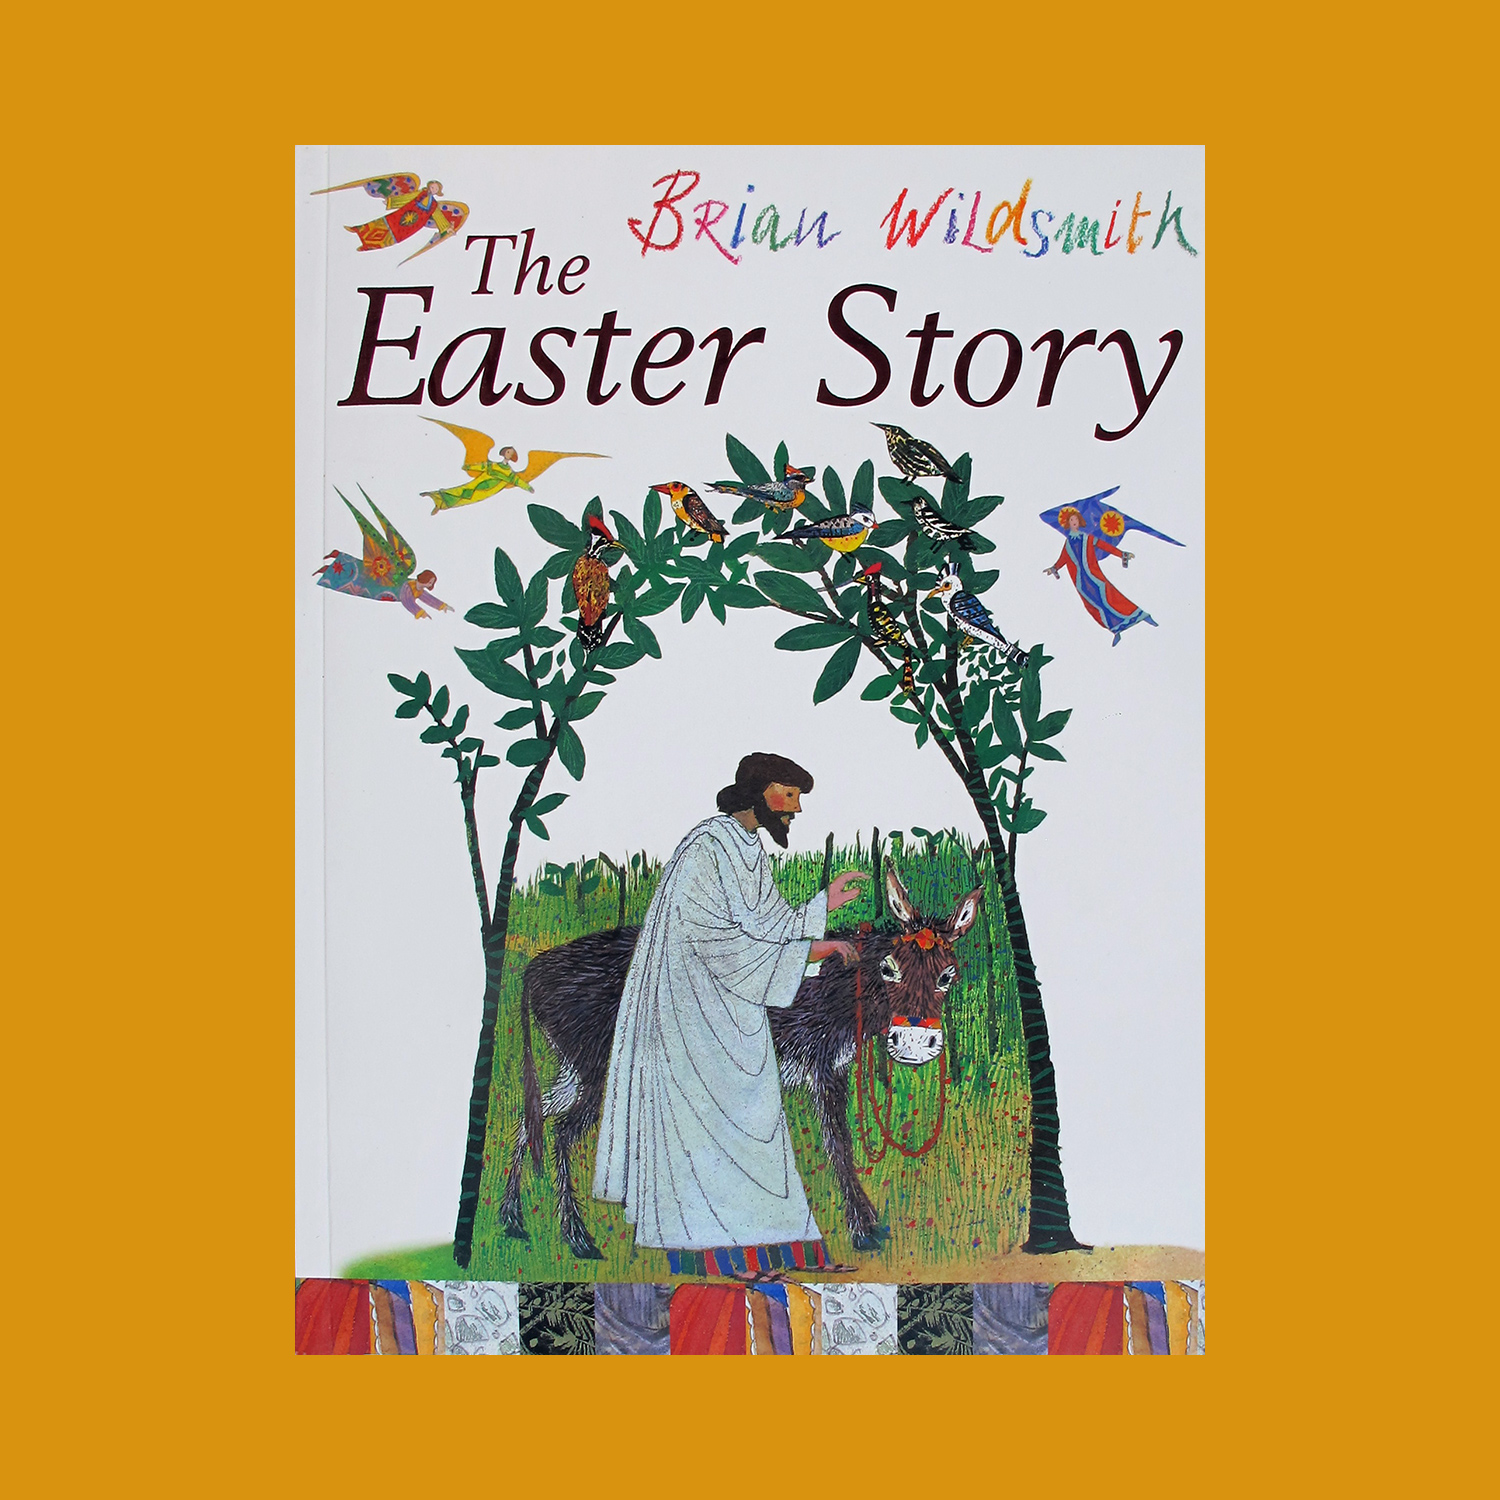 """THE EASTER STORY - 1993""""The story of Easter is told here through the eyes of the donkey that carried Jesus into Jerusalem. This beautiful and sensitive retelling from Brian Wildsmith, one of our most acclaimed children's authors of the 20th century, is perfect for sharing with children. It is presented in a beautiful gift format with stunning foil design on a cloth bound hardback cover.""""LoveReading4kids""""Some of the brilliant illustrations are as vibrant as Italian altar pieces, architectural backdrops lavish with golds, reds and purples...""""Books For Keeps"""